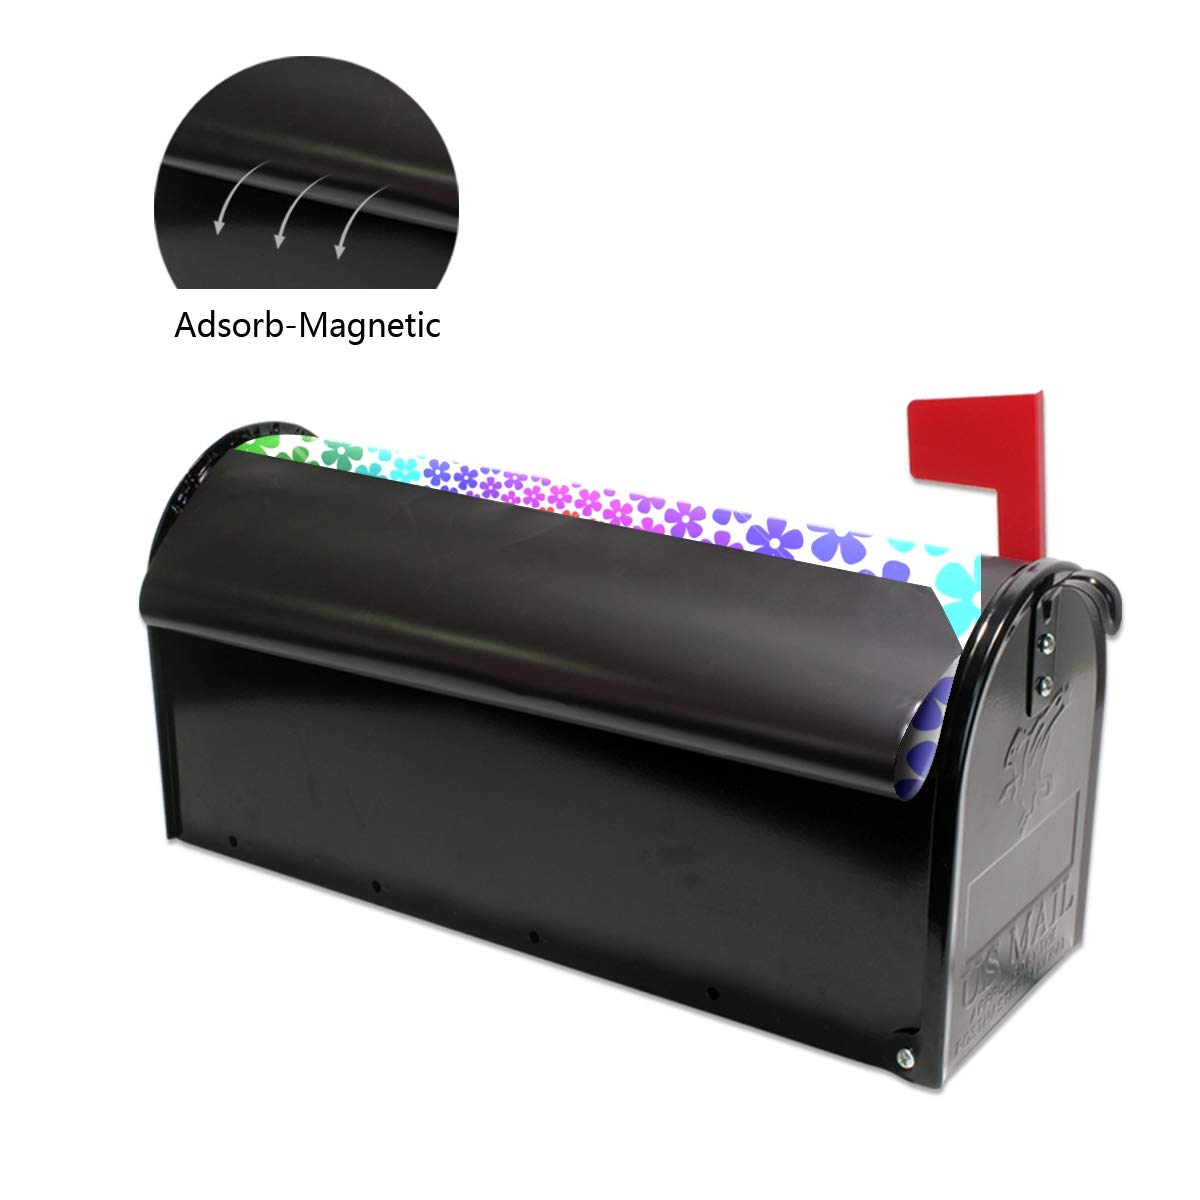 YQINING Mailbox Cover Magnetic Customized Flower Power Two Sizes Suitable for US Mailbox by YQINING (Image #5)